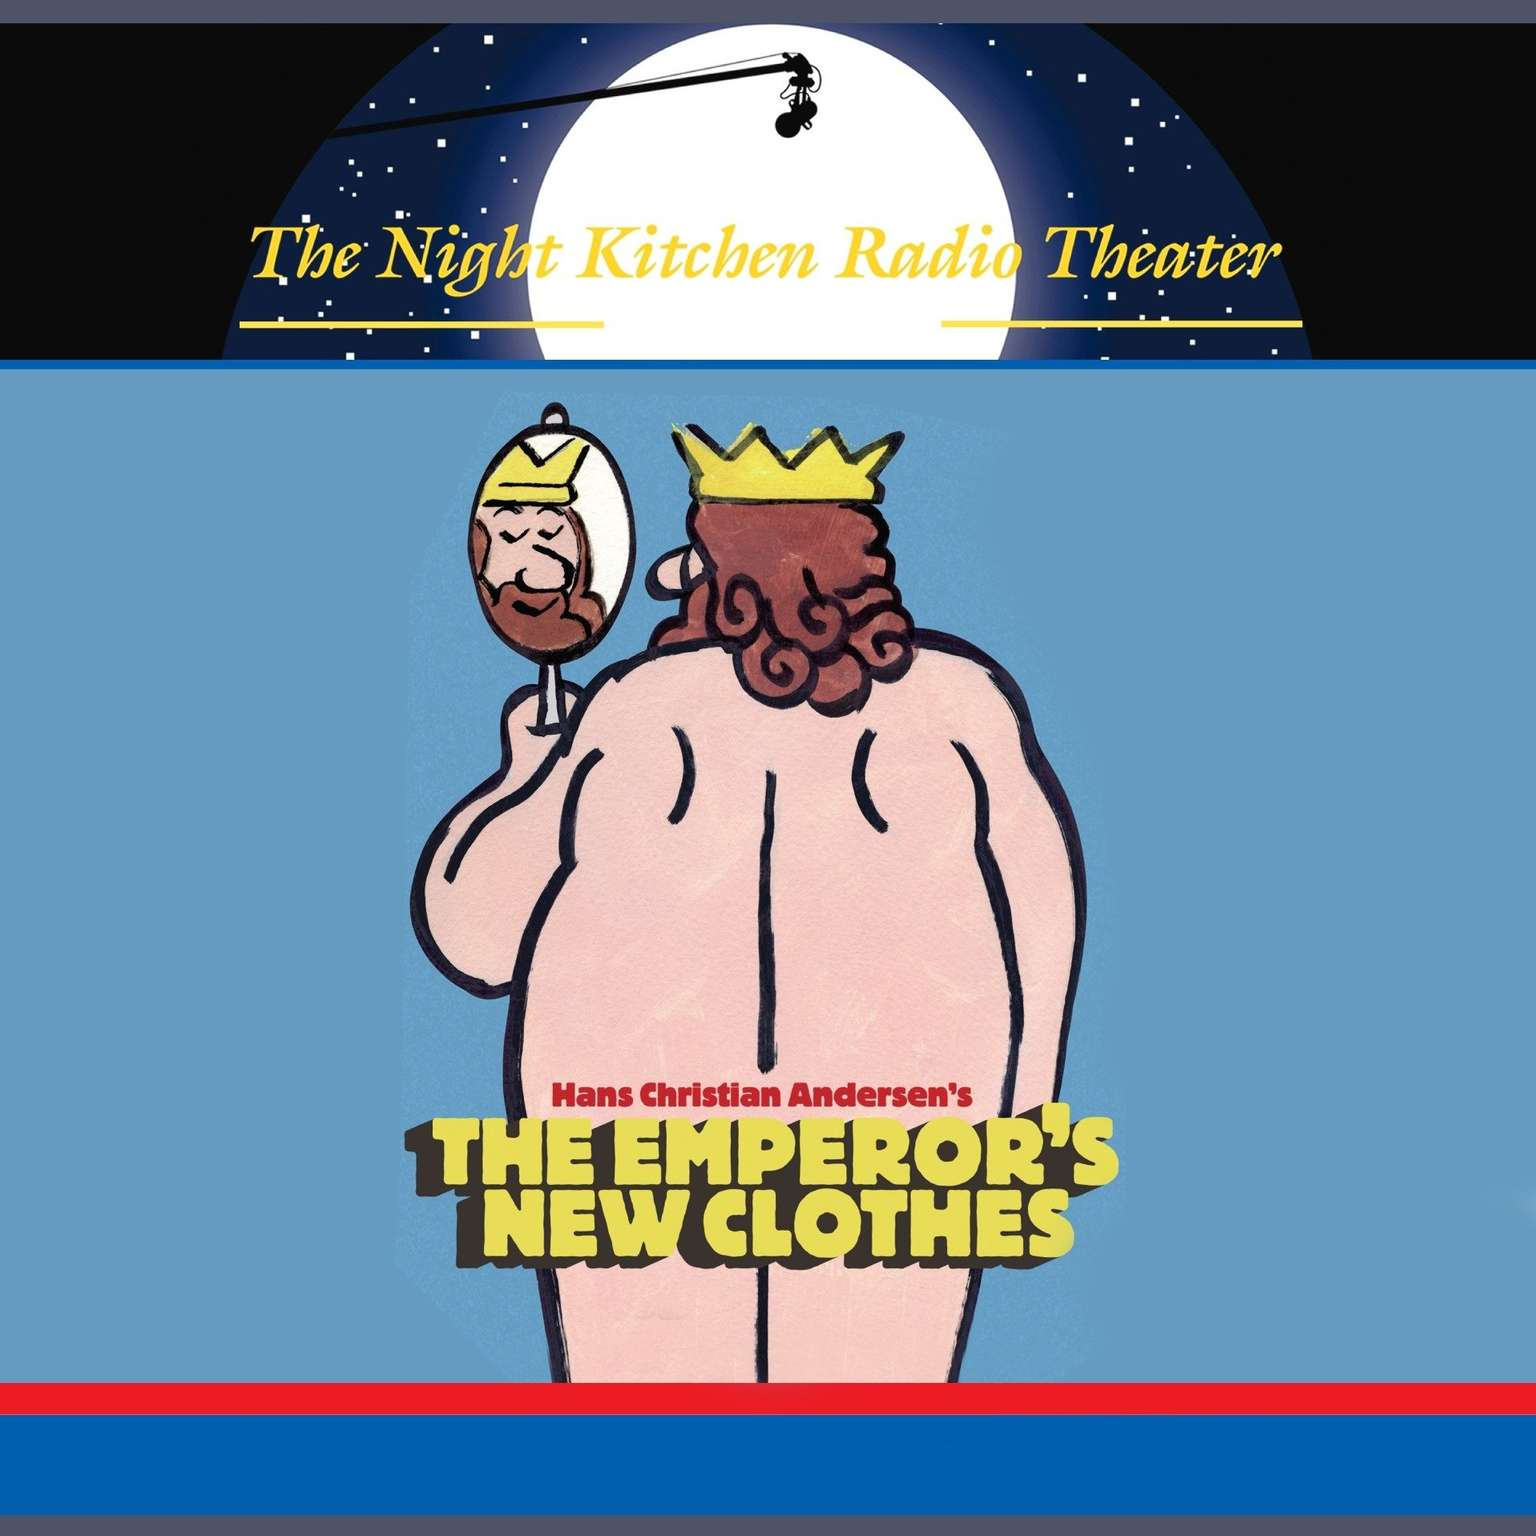 Printable The Night Kitchen Radio Theater Presents: The Emperor's New Clothes Audiobook Cover Art